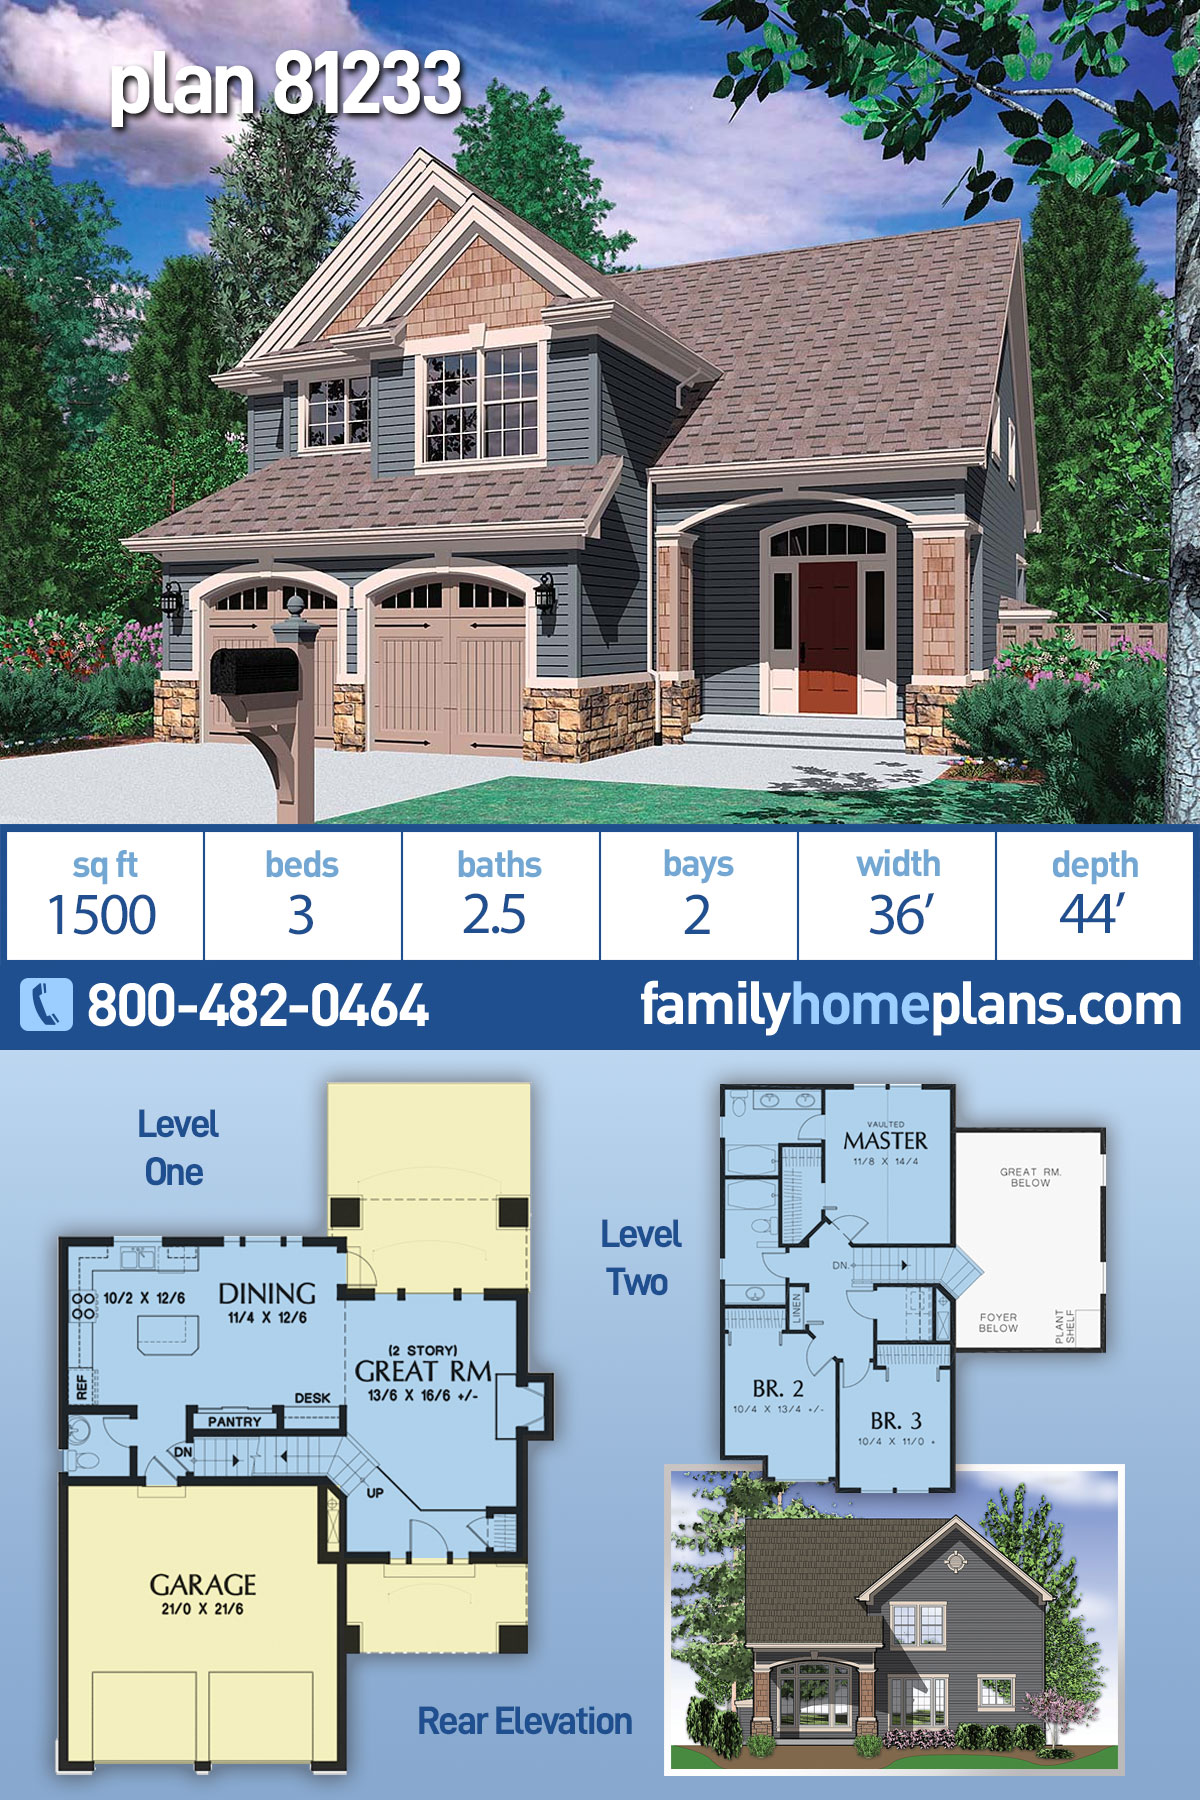 Craftsman , Traditional House Plan 81233 with 3 Beds, 3 Baths, 2 Car Garage